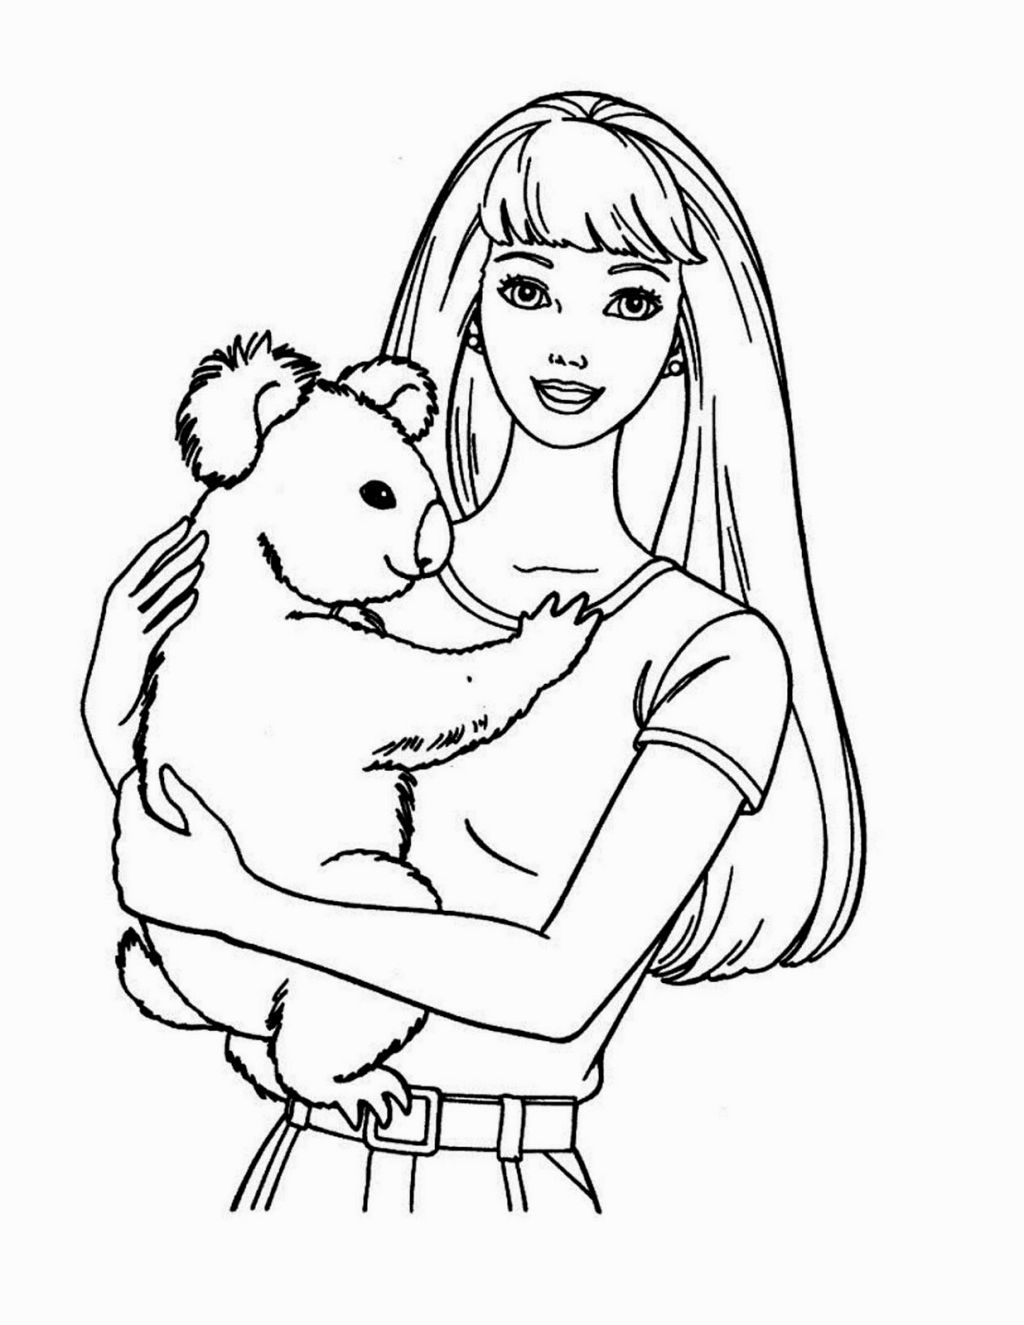 Doll Palace Coloring Pages | Coloring Pages | Pinterest